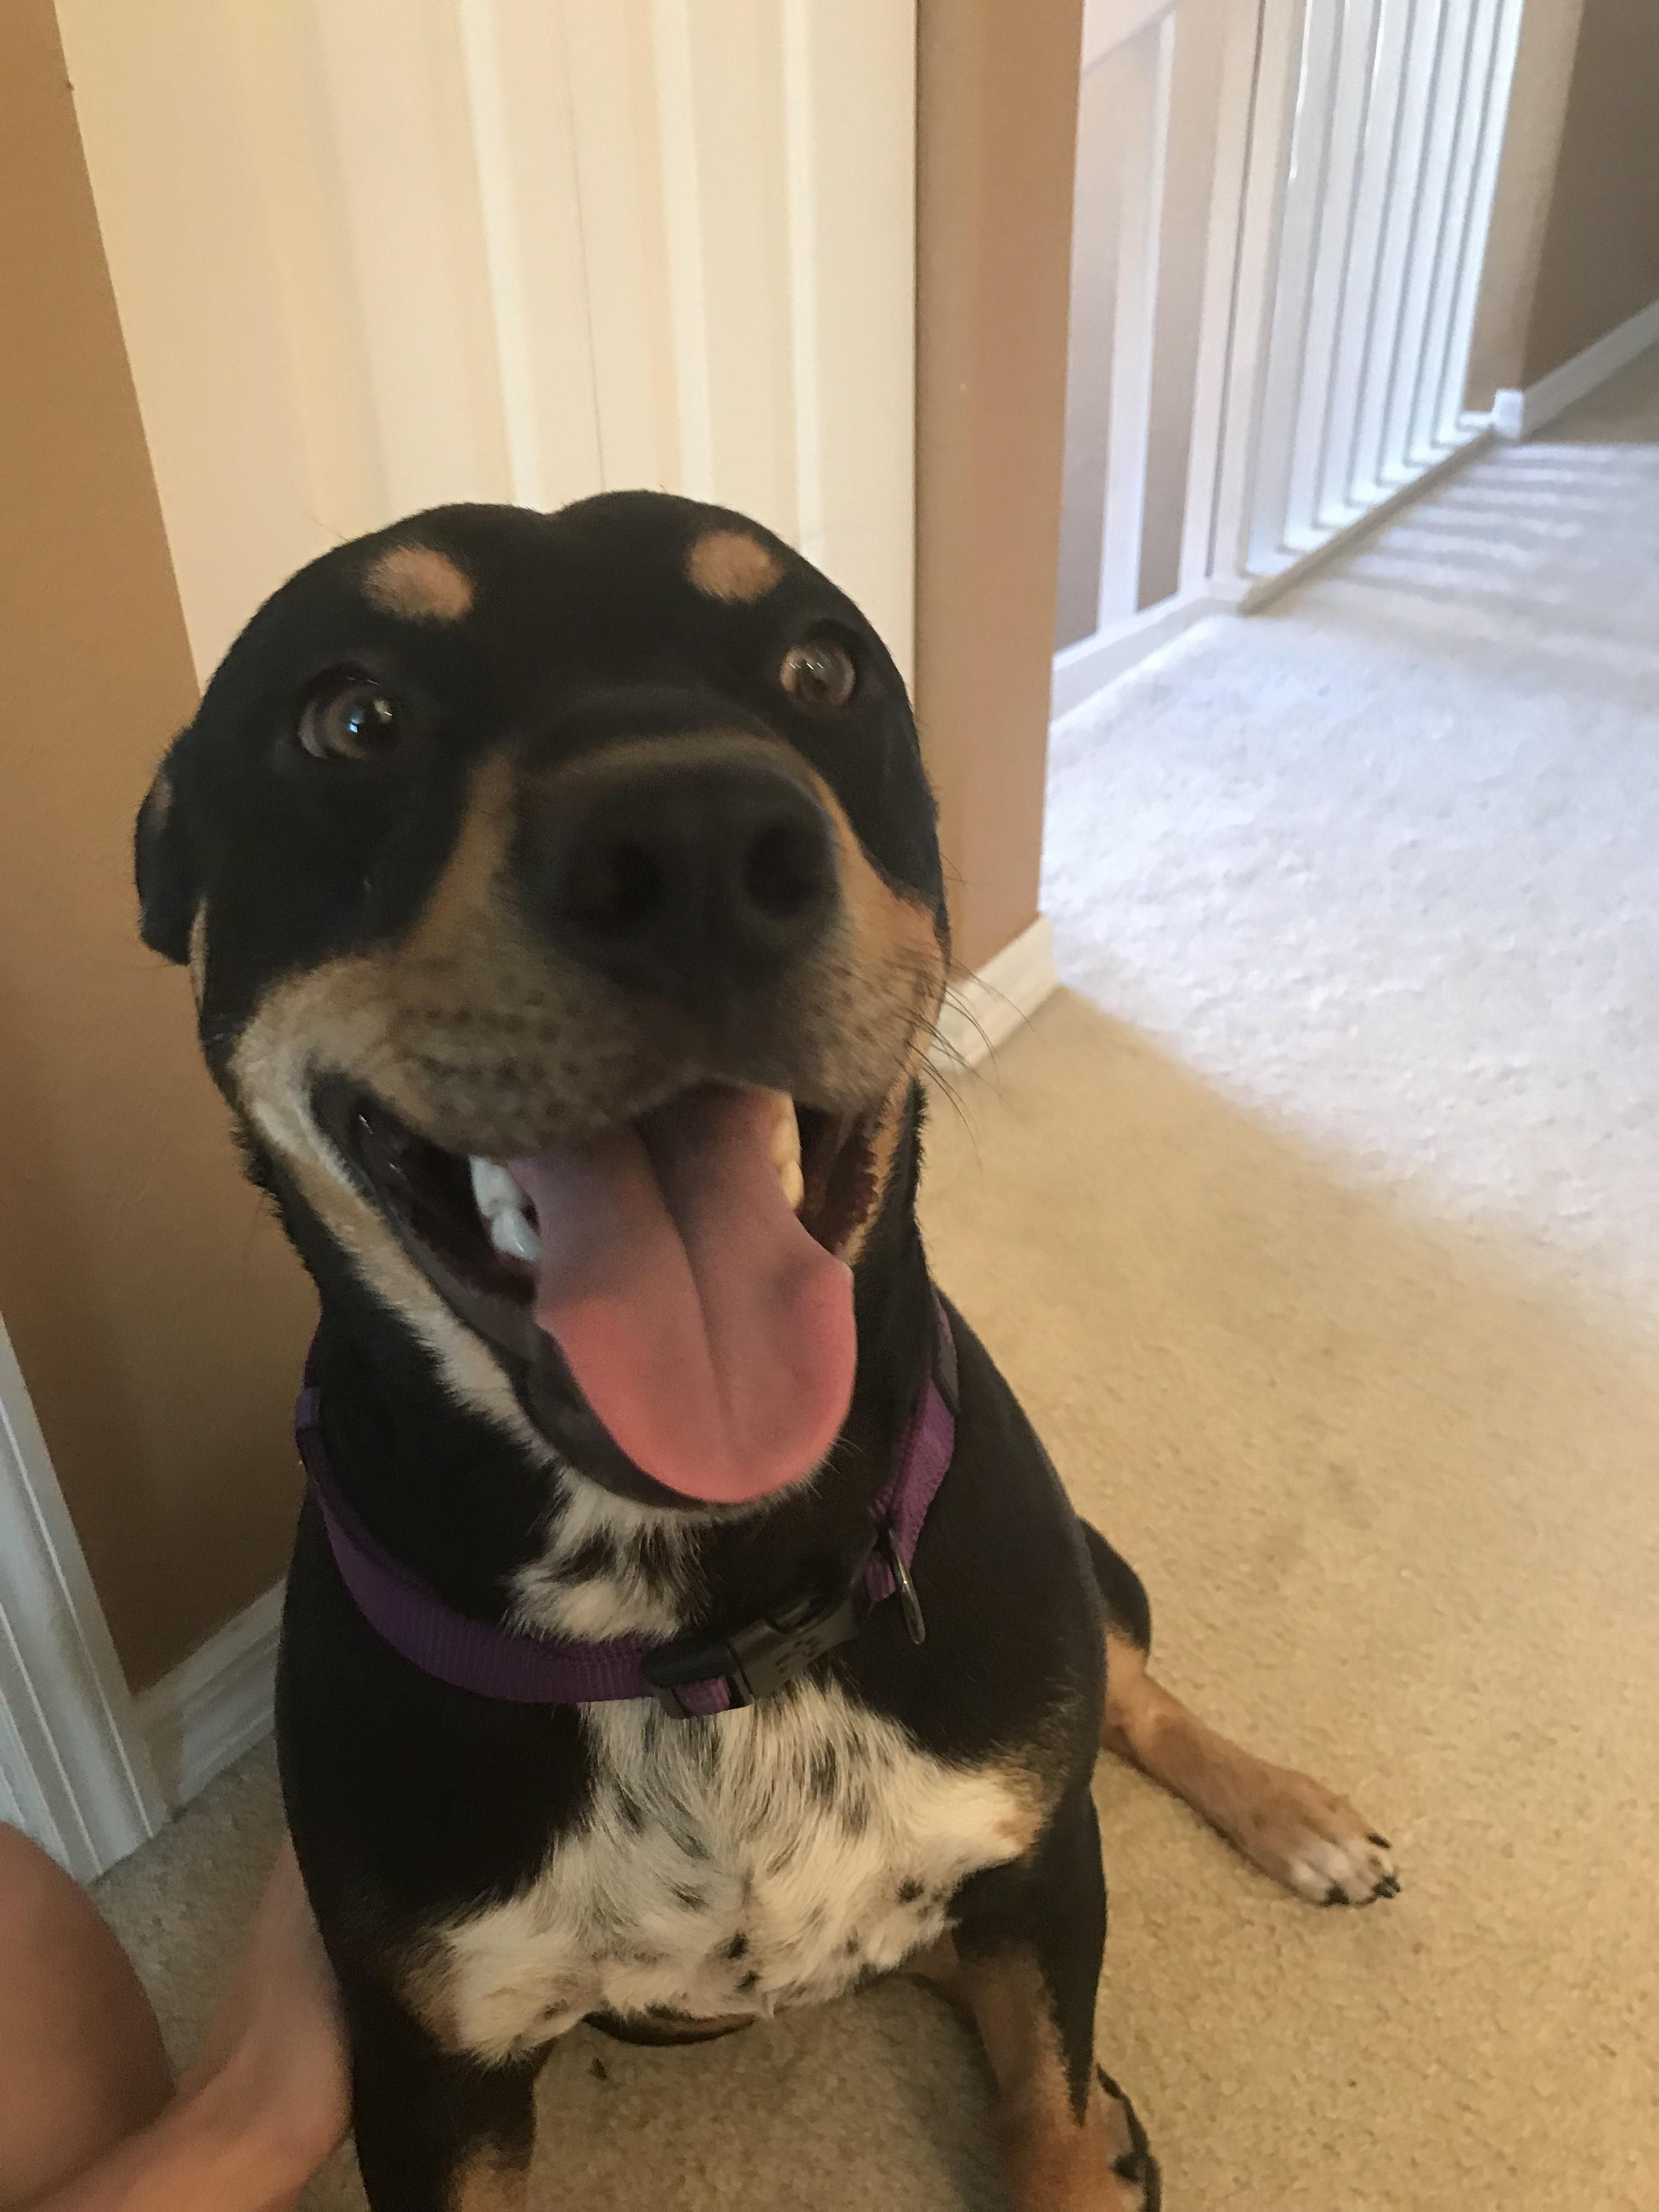 My Gf And I Got Our First Dog Brutus Wanted To Say Hello To Reddit